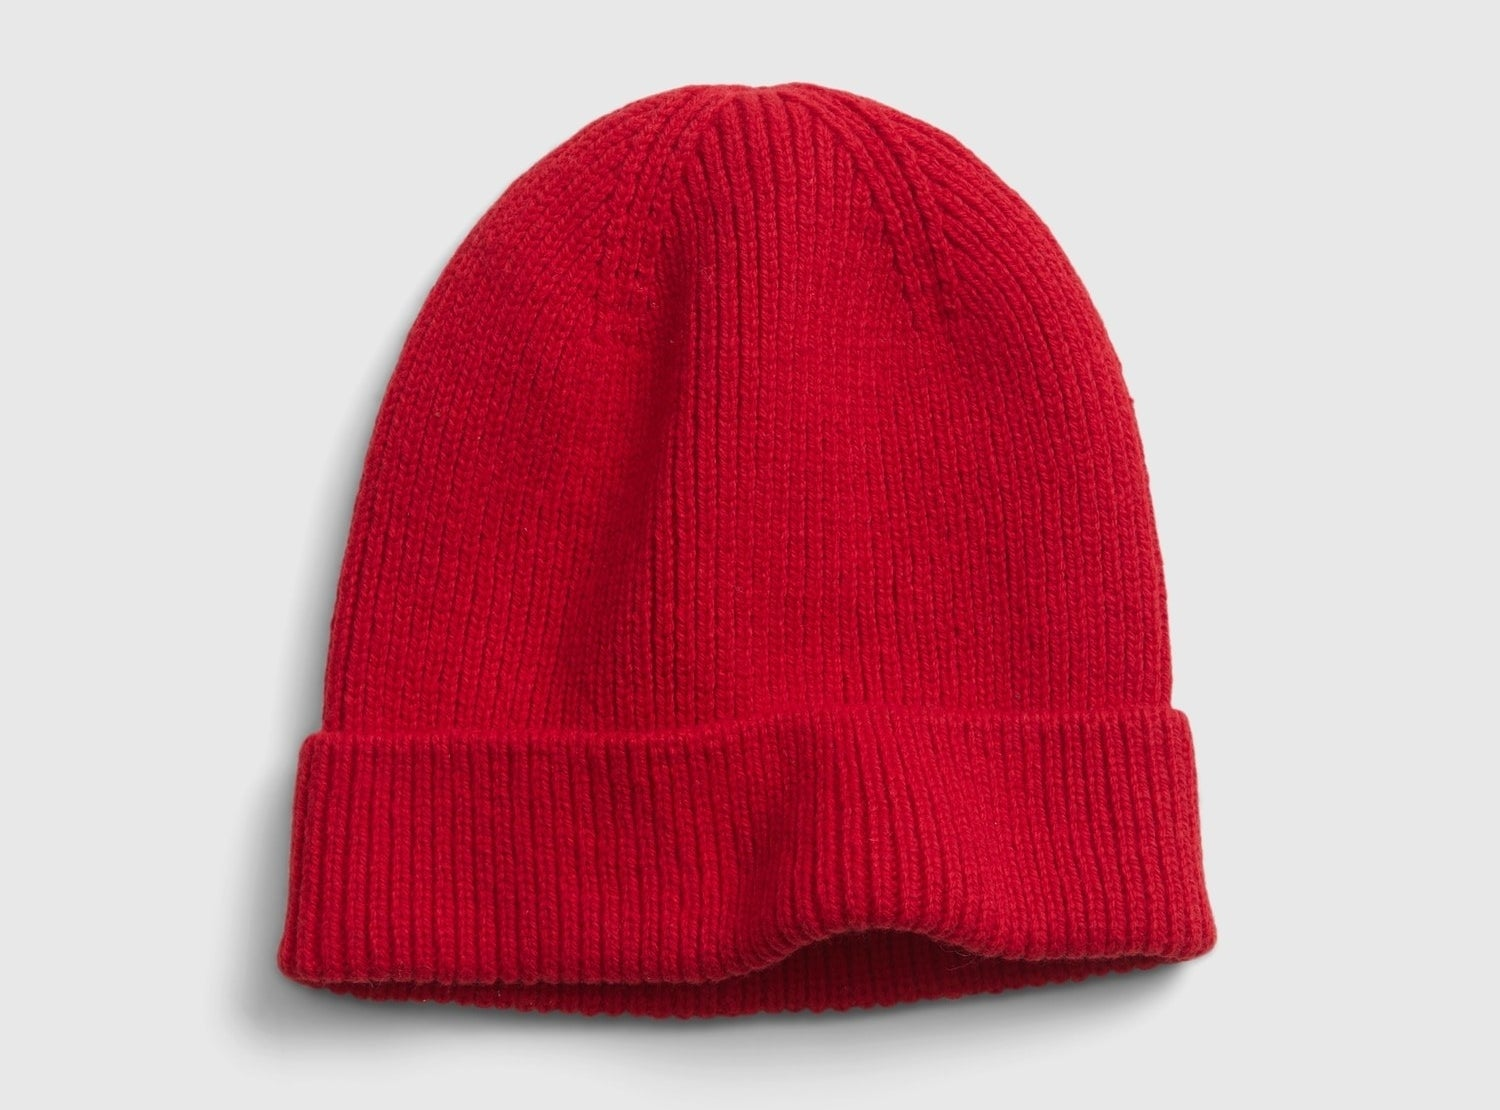 The beanie in red